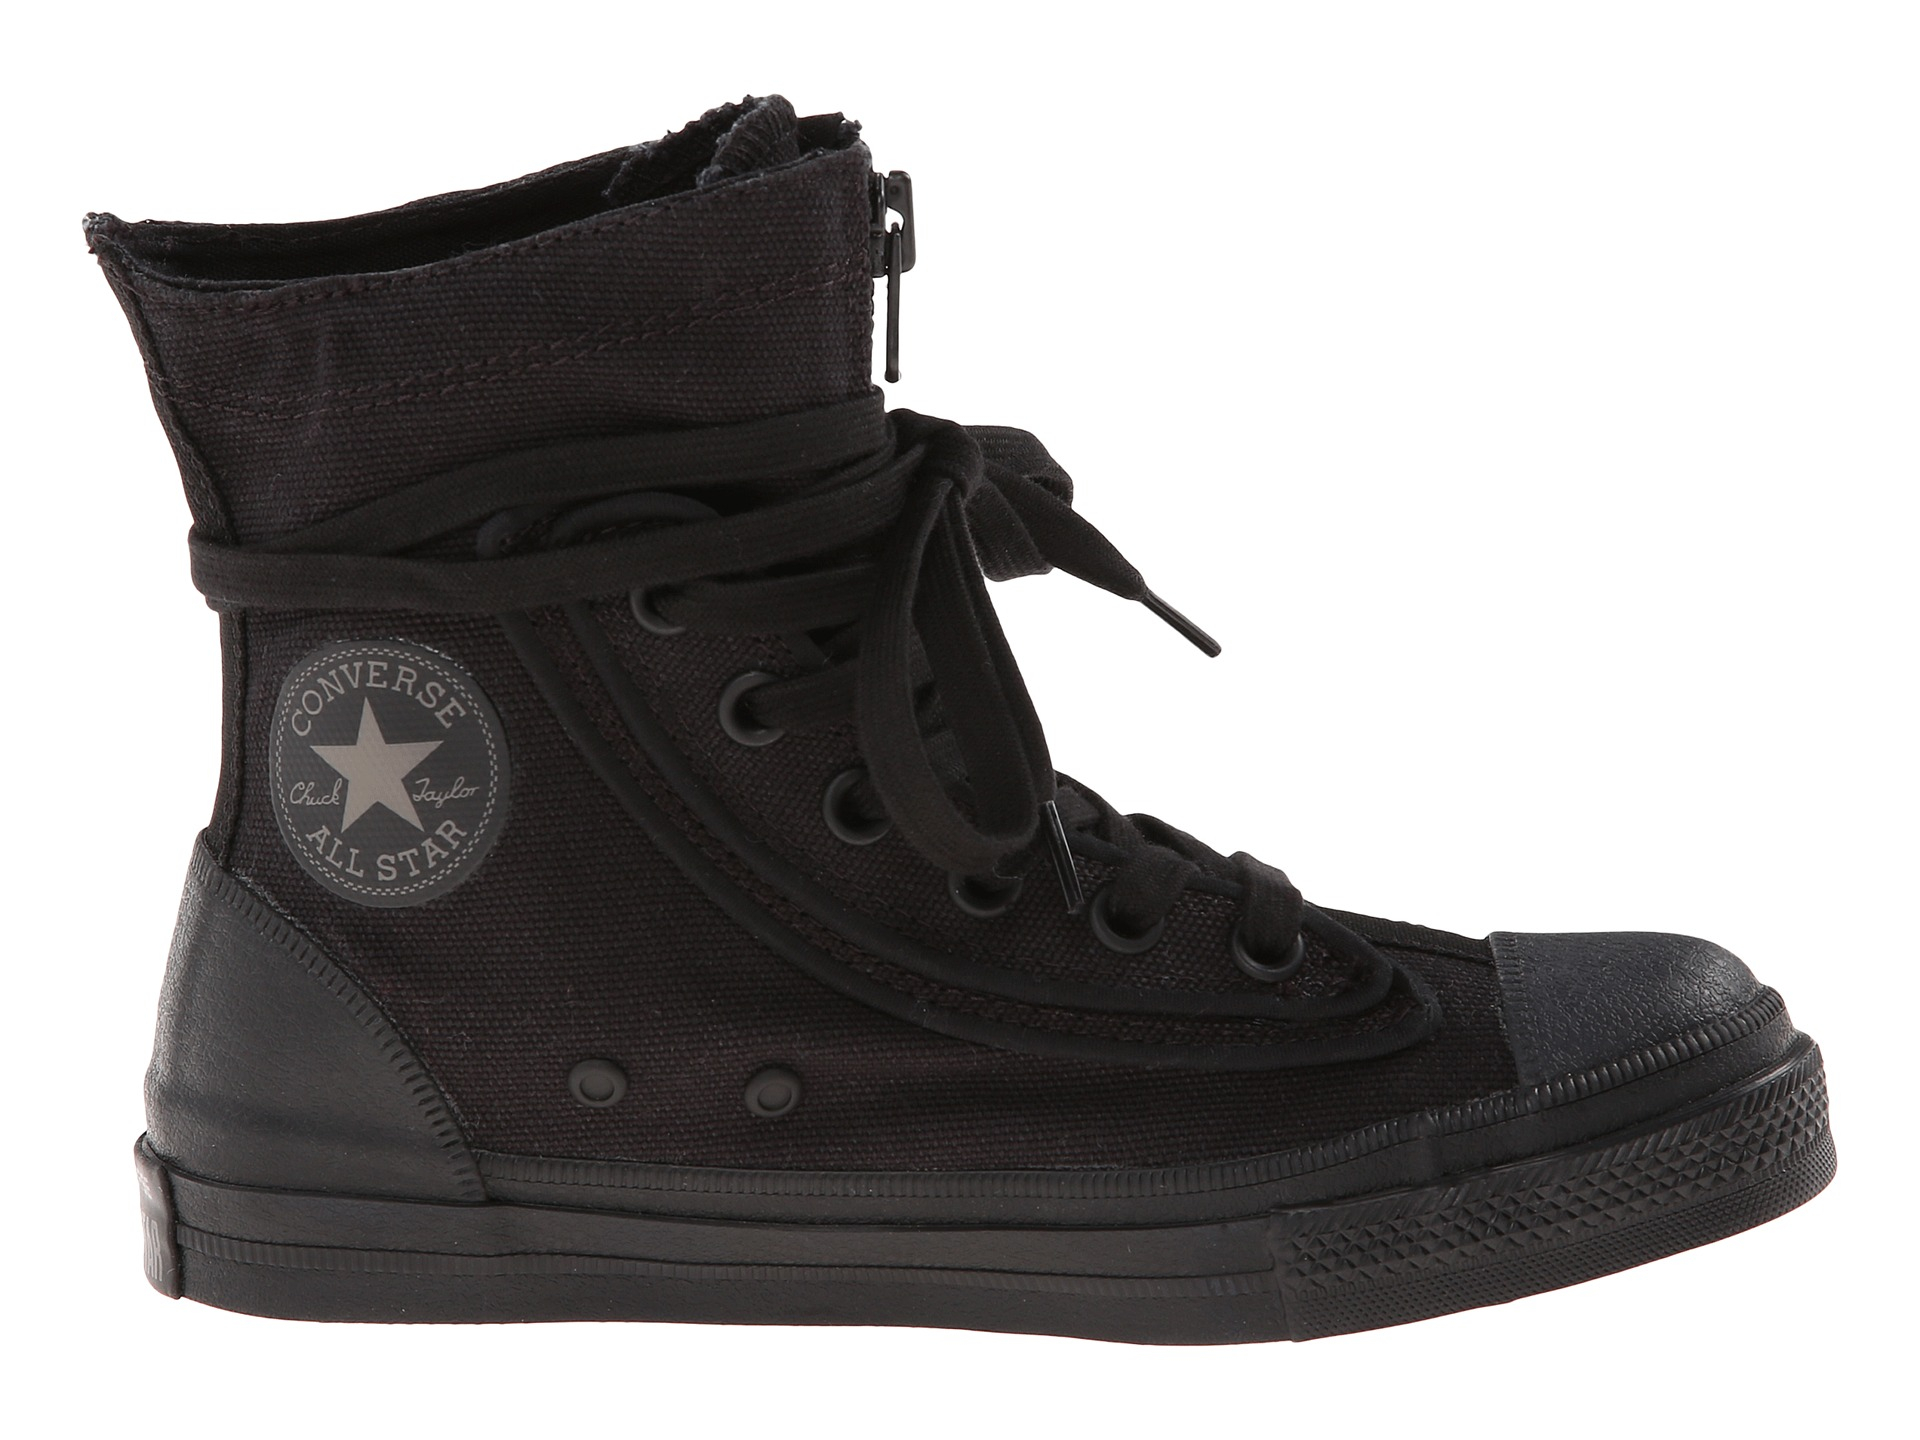 Converse Zipper Shoes